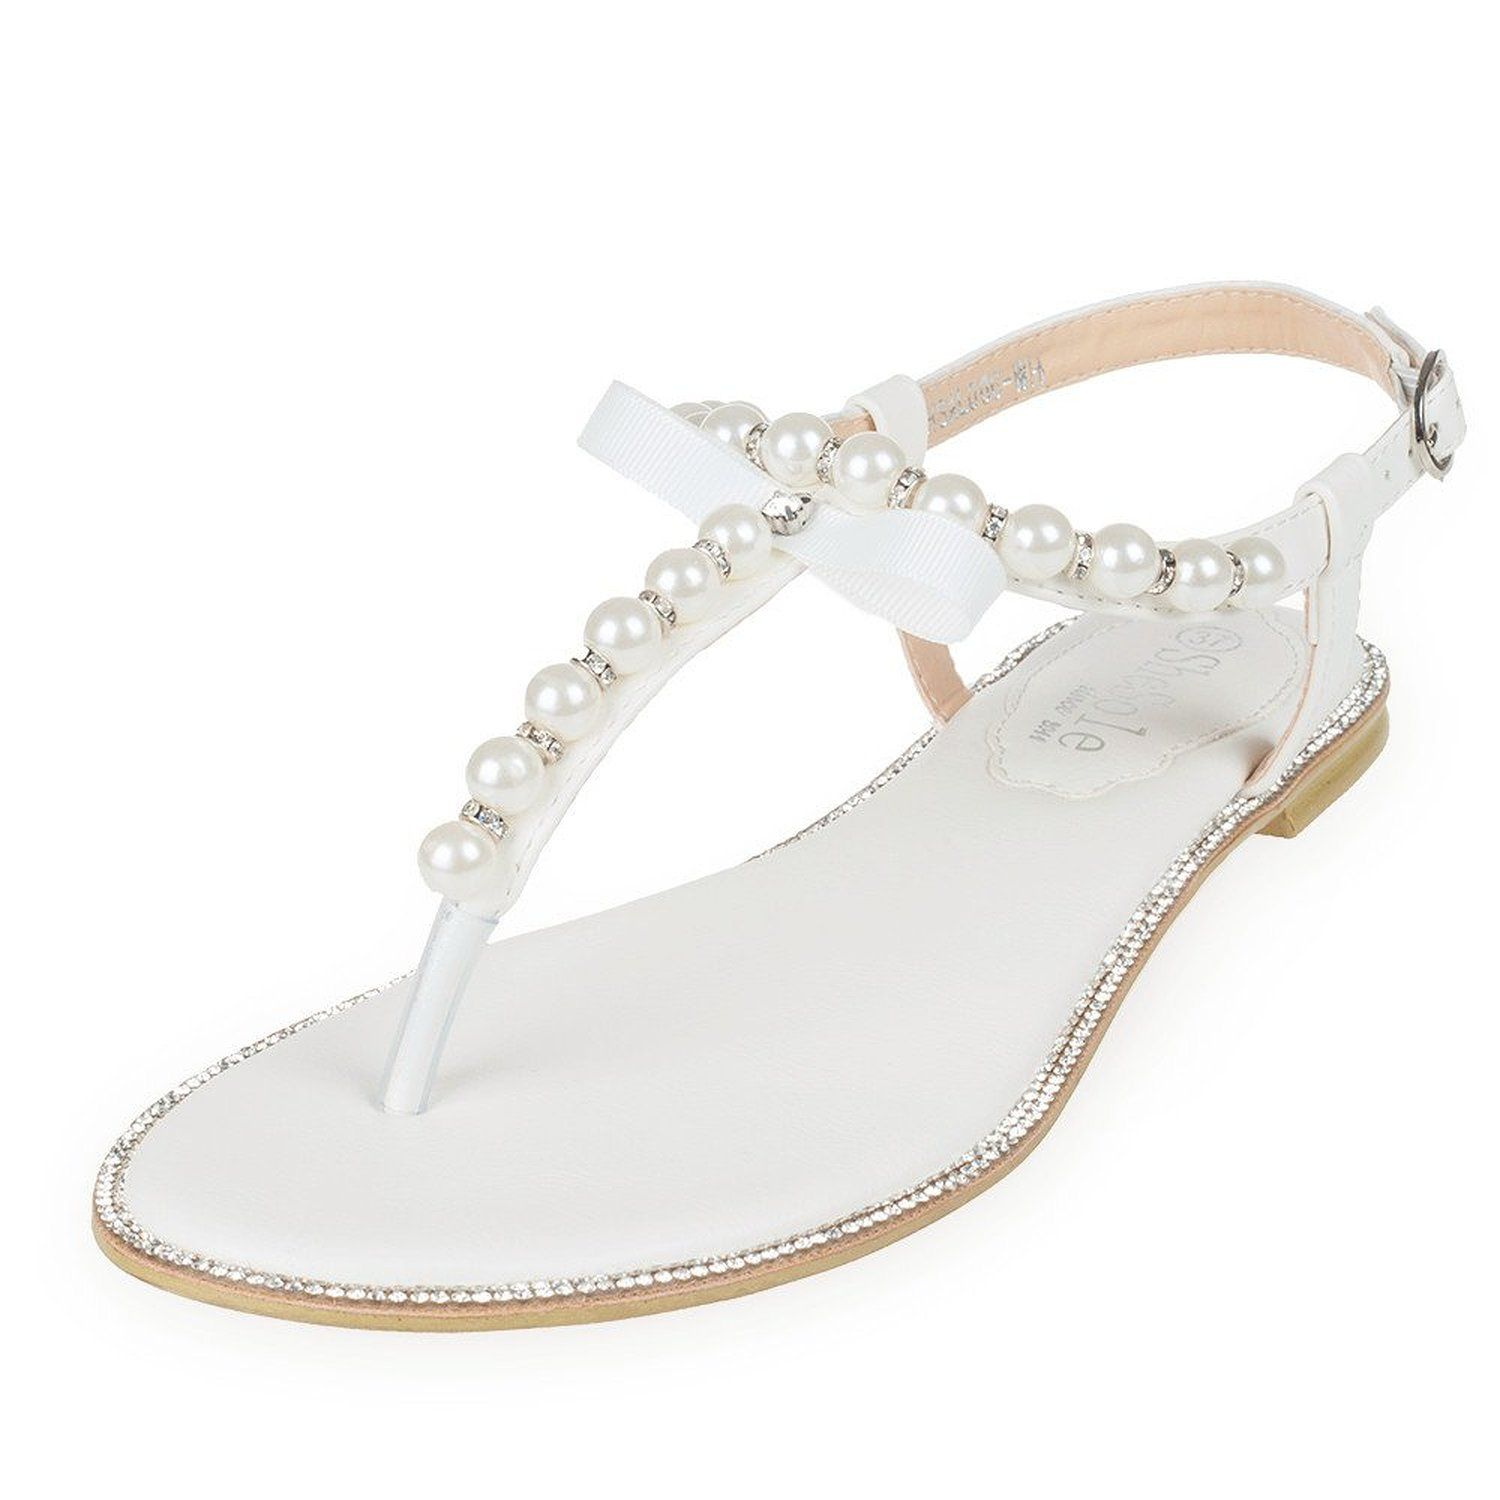 ed29b1d6f27ea6 SheSole Womens Gladiator Flat Sandals Pu Leather Wedding Pearls Rhinestone  Cute Comfortable Shoes    If you love this